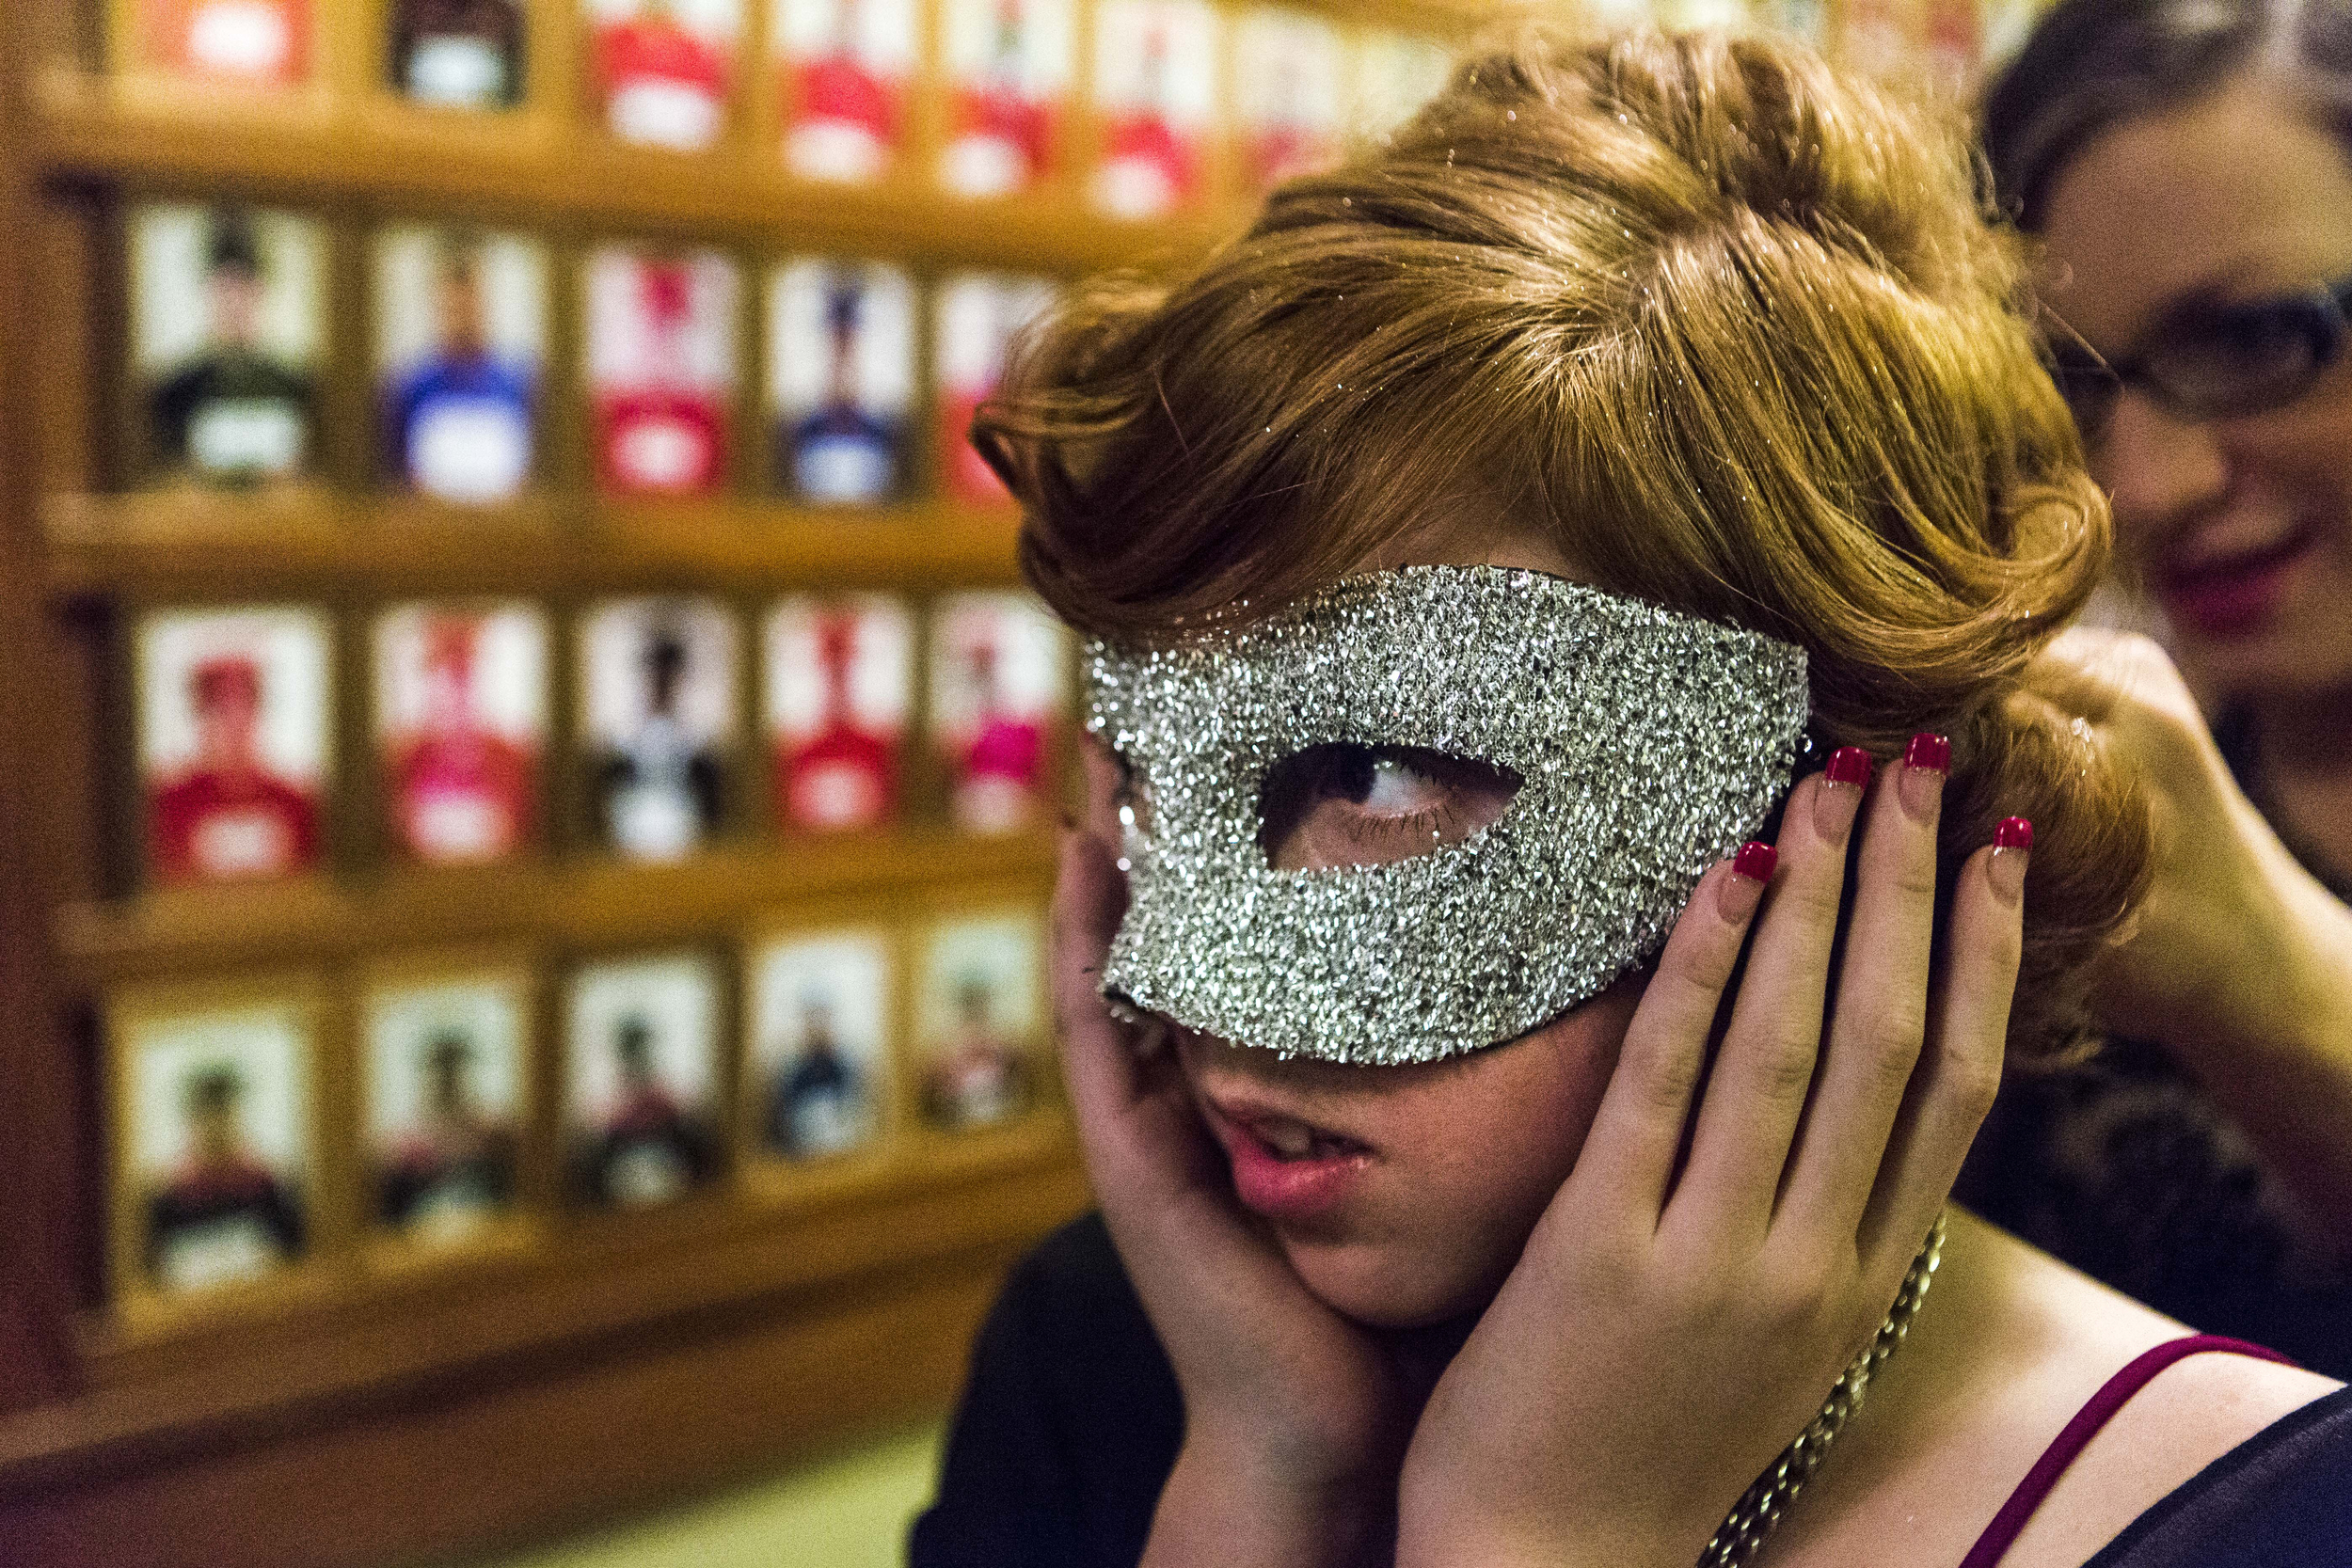 As part of her outfit, a teenager puts on a mask during the Lighthouse's Prom in Lincoln, Nebraska.Lighthouse, an organization that serves as a refuge for at-risk children for over 25 years, organized their own dance for those who could not afford to attend their school's prom. Everything from getting their nails to the the outfits themselves were donated.